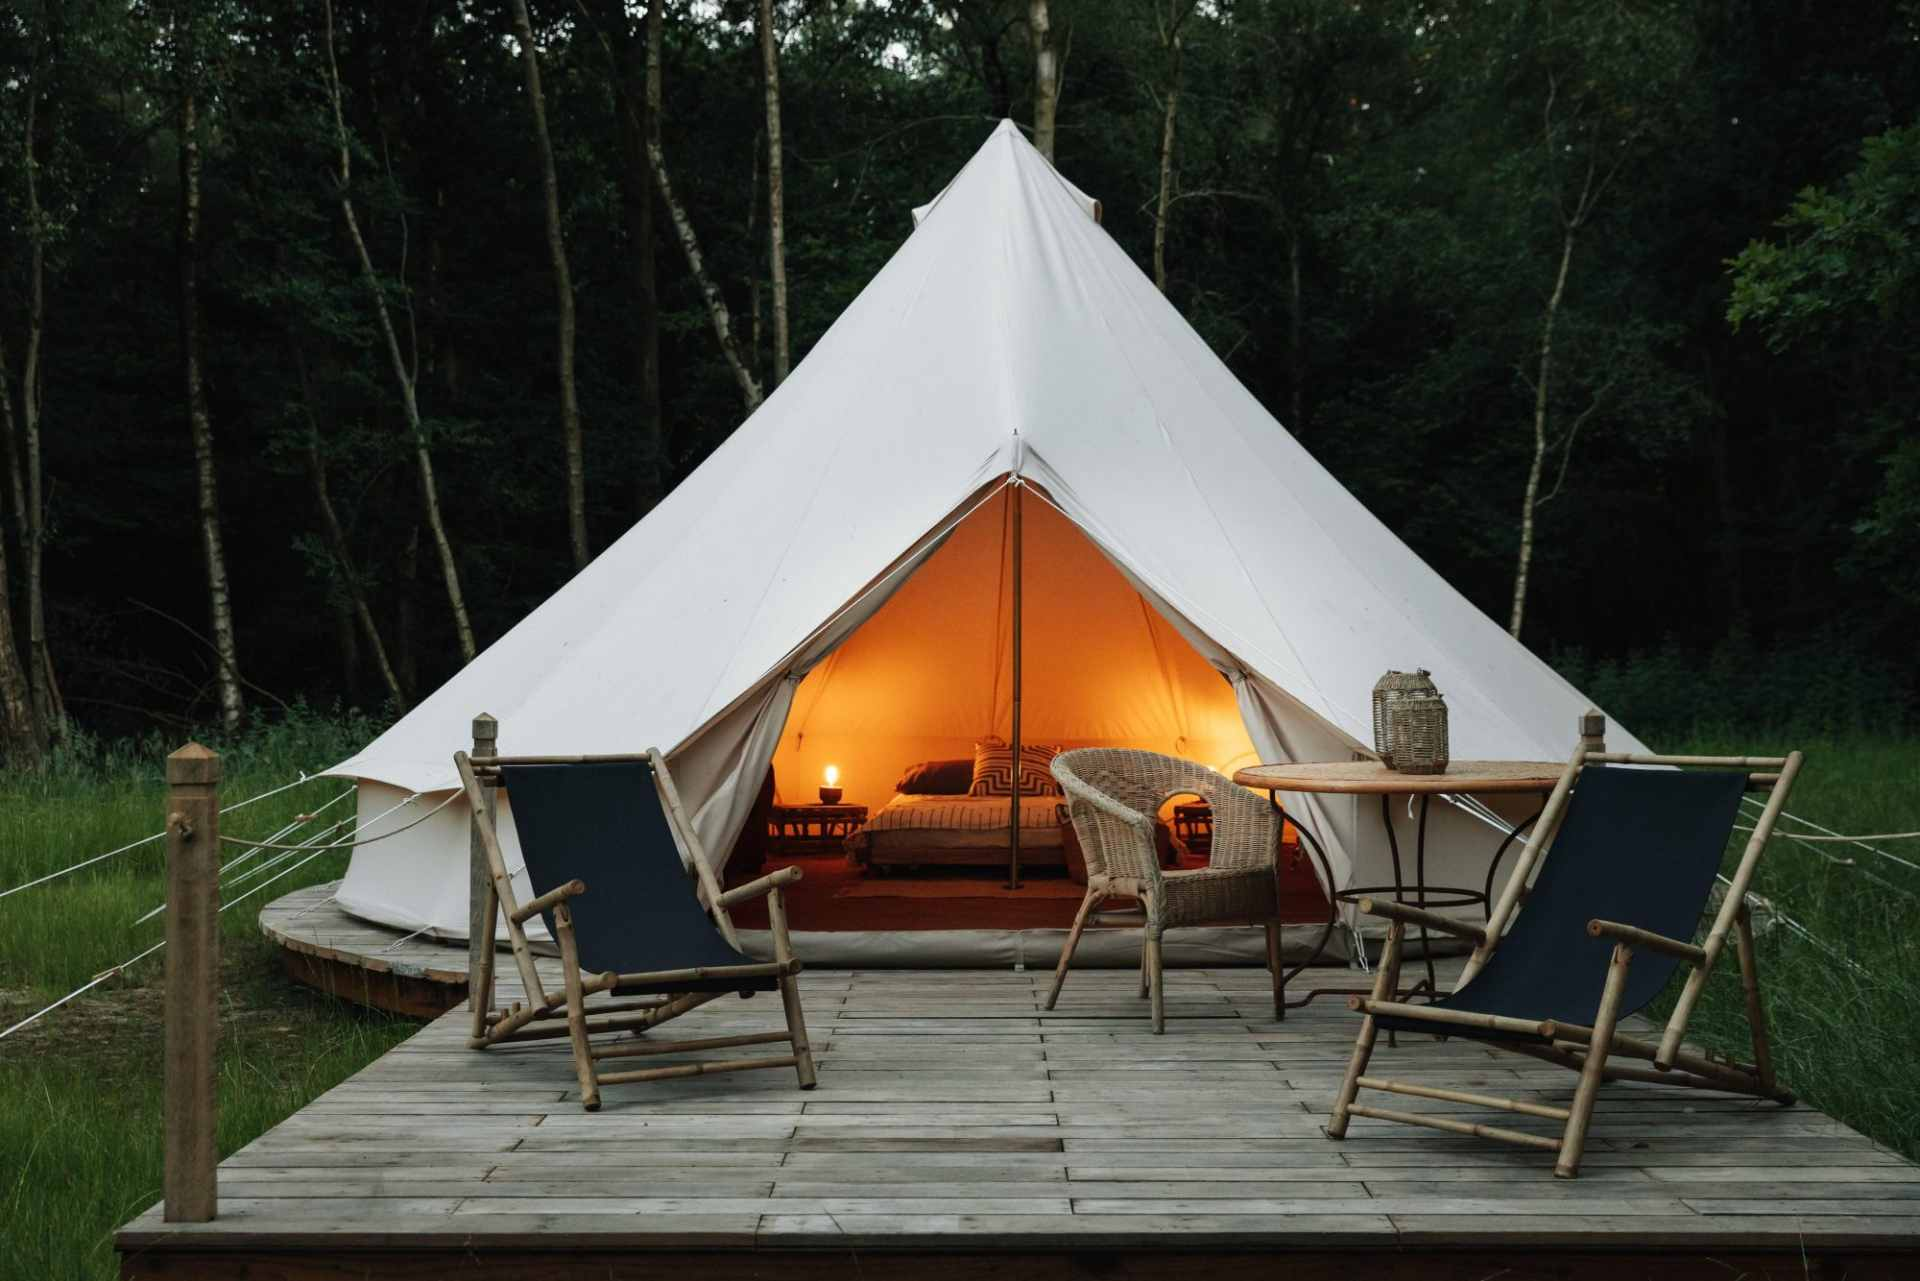 white-bell-tent-on-deck-with-chairs-lit-up-in-evening-settle-canvas-camp